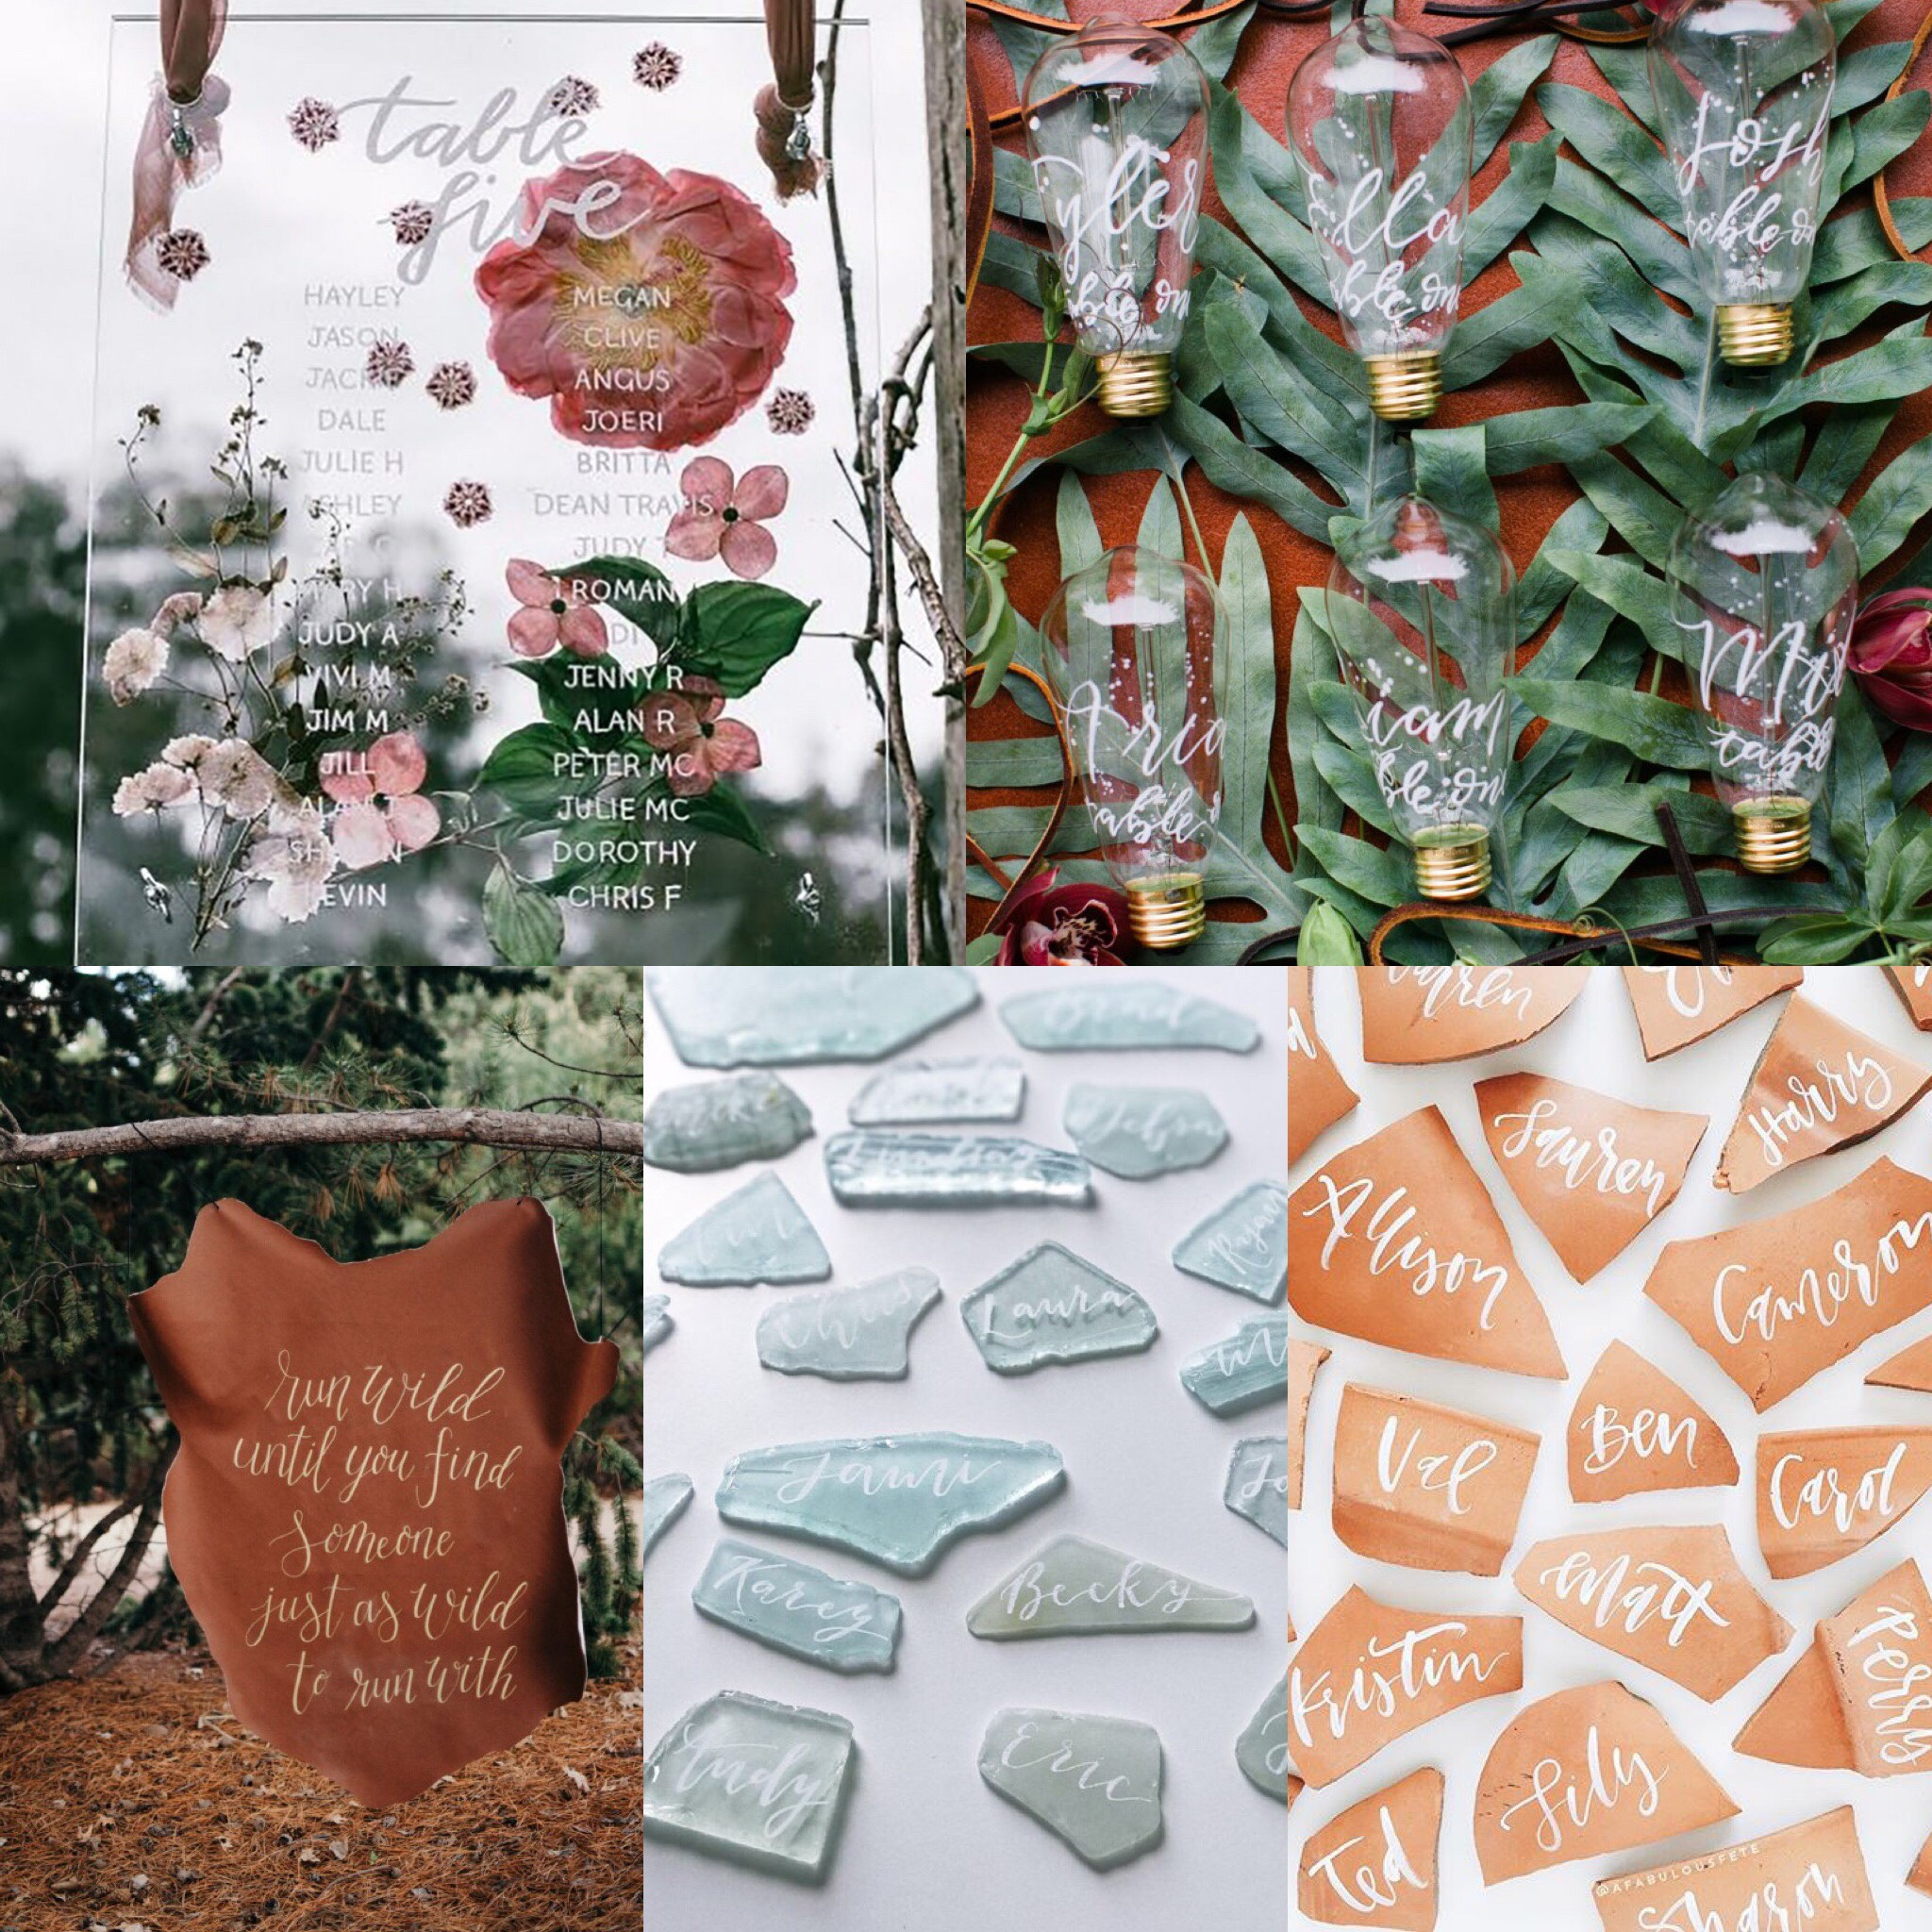 Bridal Blogger Brittany's favorite calligraphy wedding details!